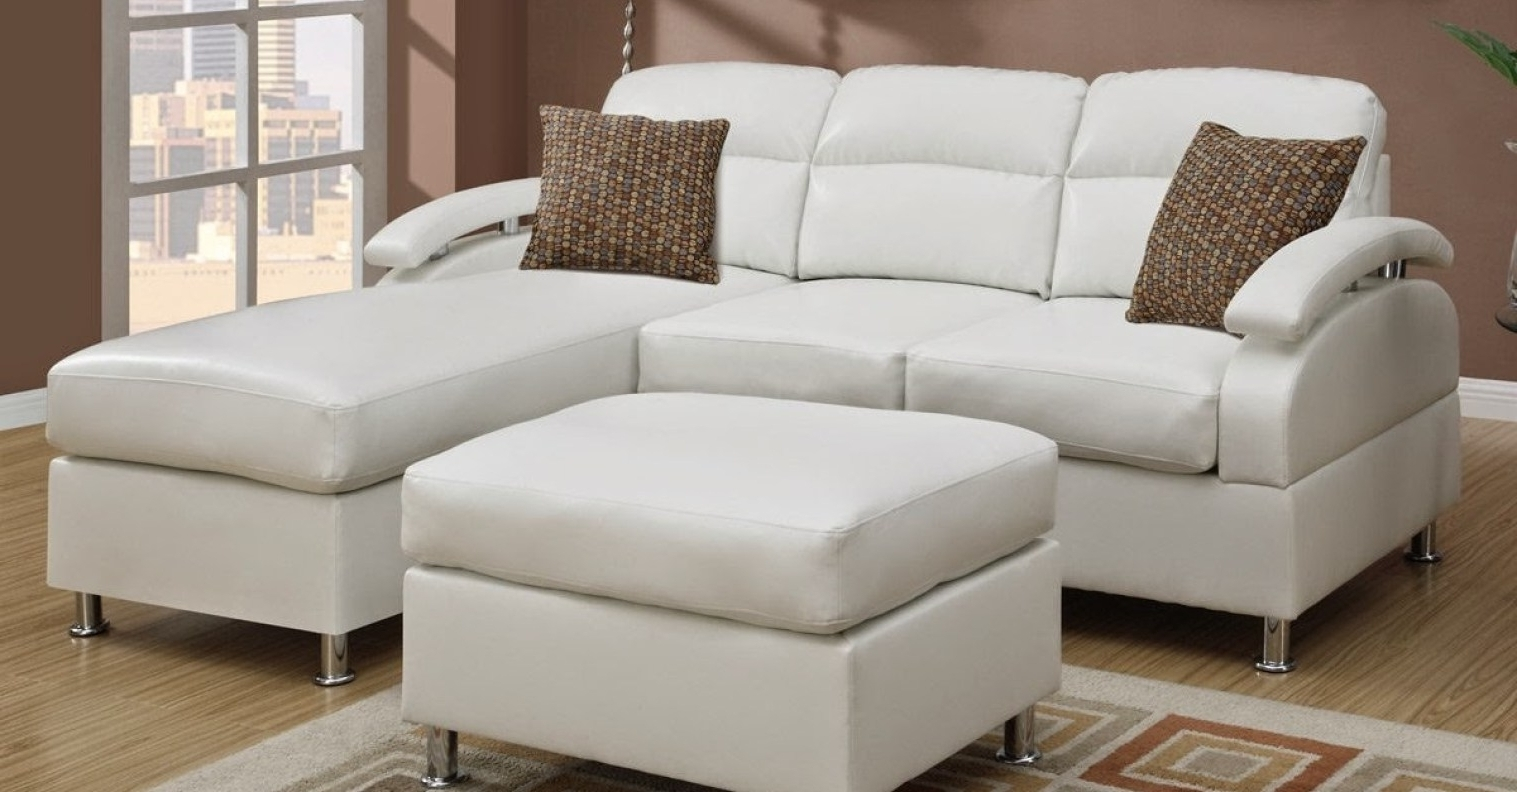 Fashionable Portland Oregon Sectional Sofas With Regard To Photos Sectional Sofas Portland Oregon – Mediasupload (View 5 of 15)